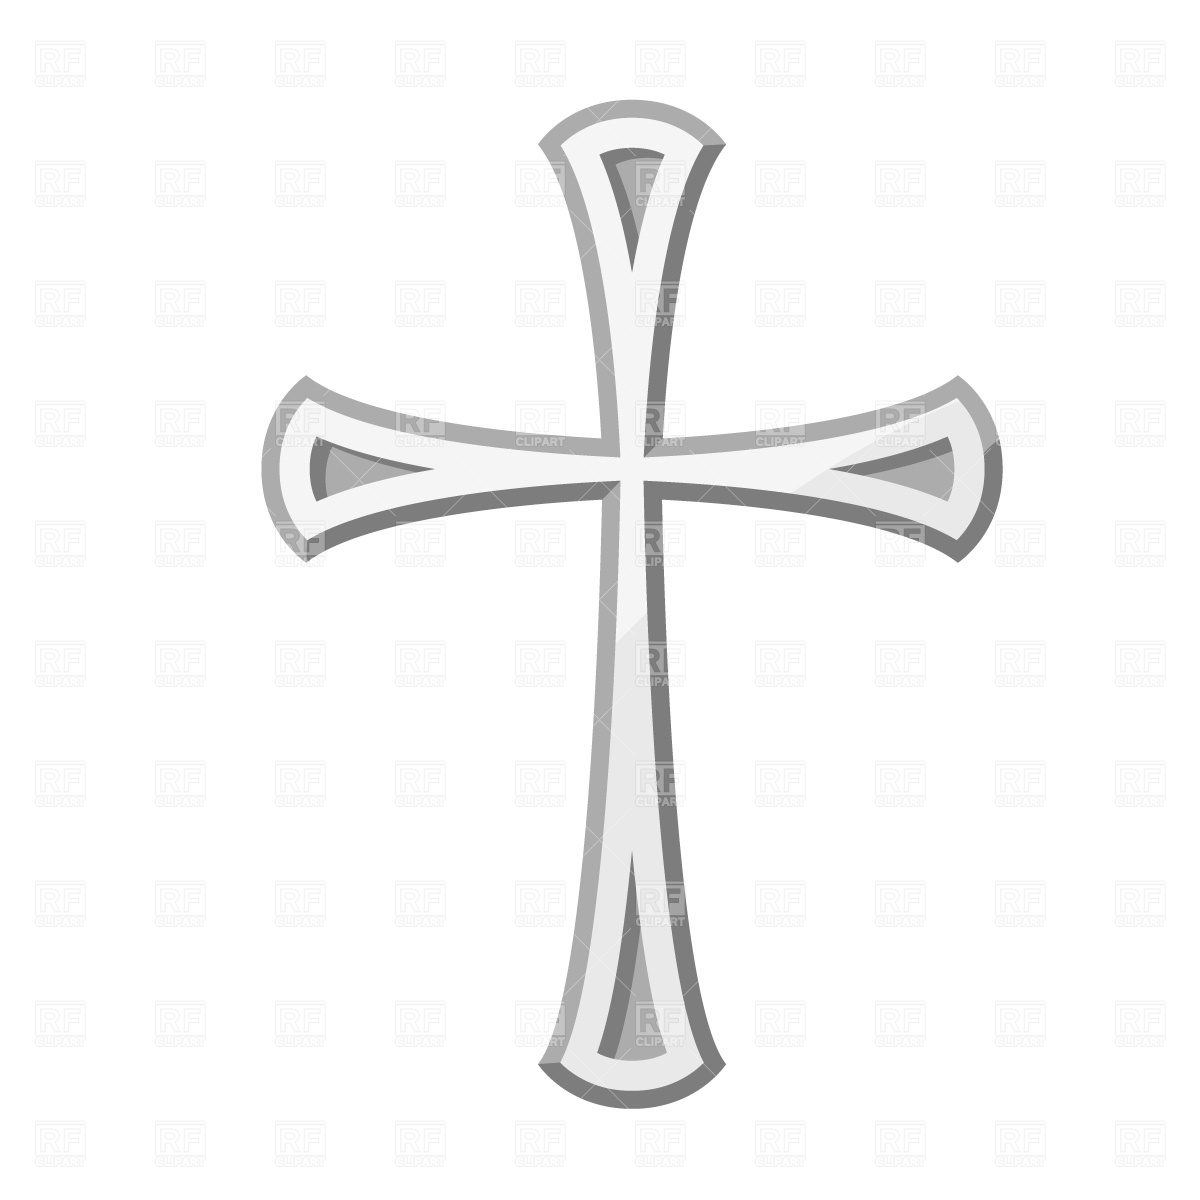 19 Free Downloadable Vector Cross Images